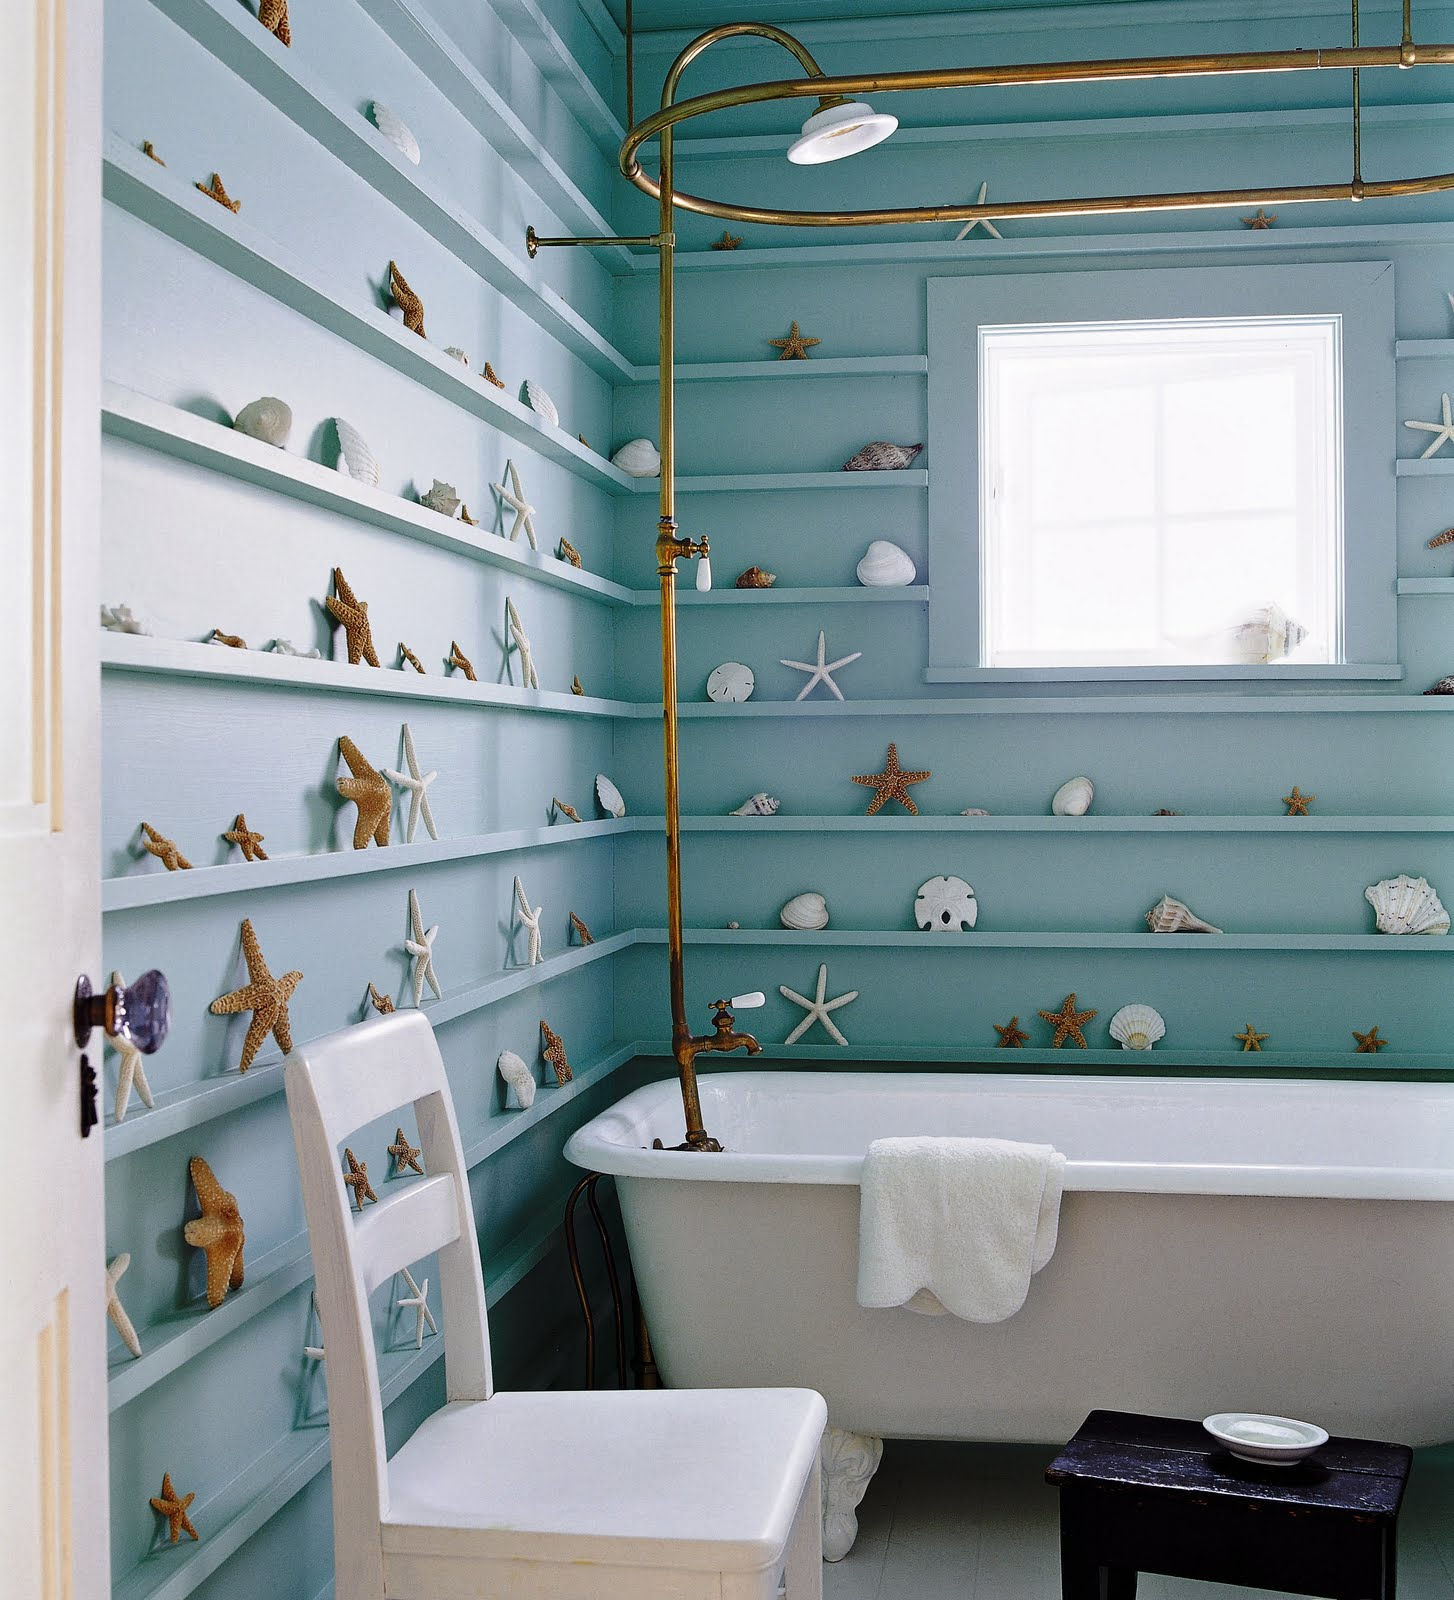 House crush haute to home sophisticated aqua for Beach cottage bathroom ideas